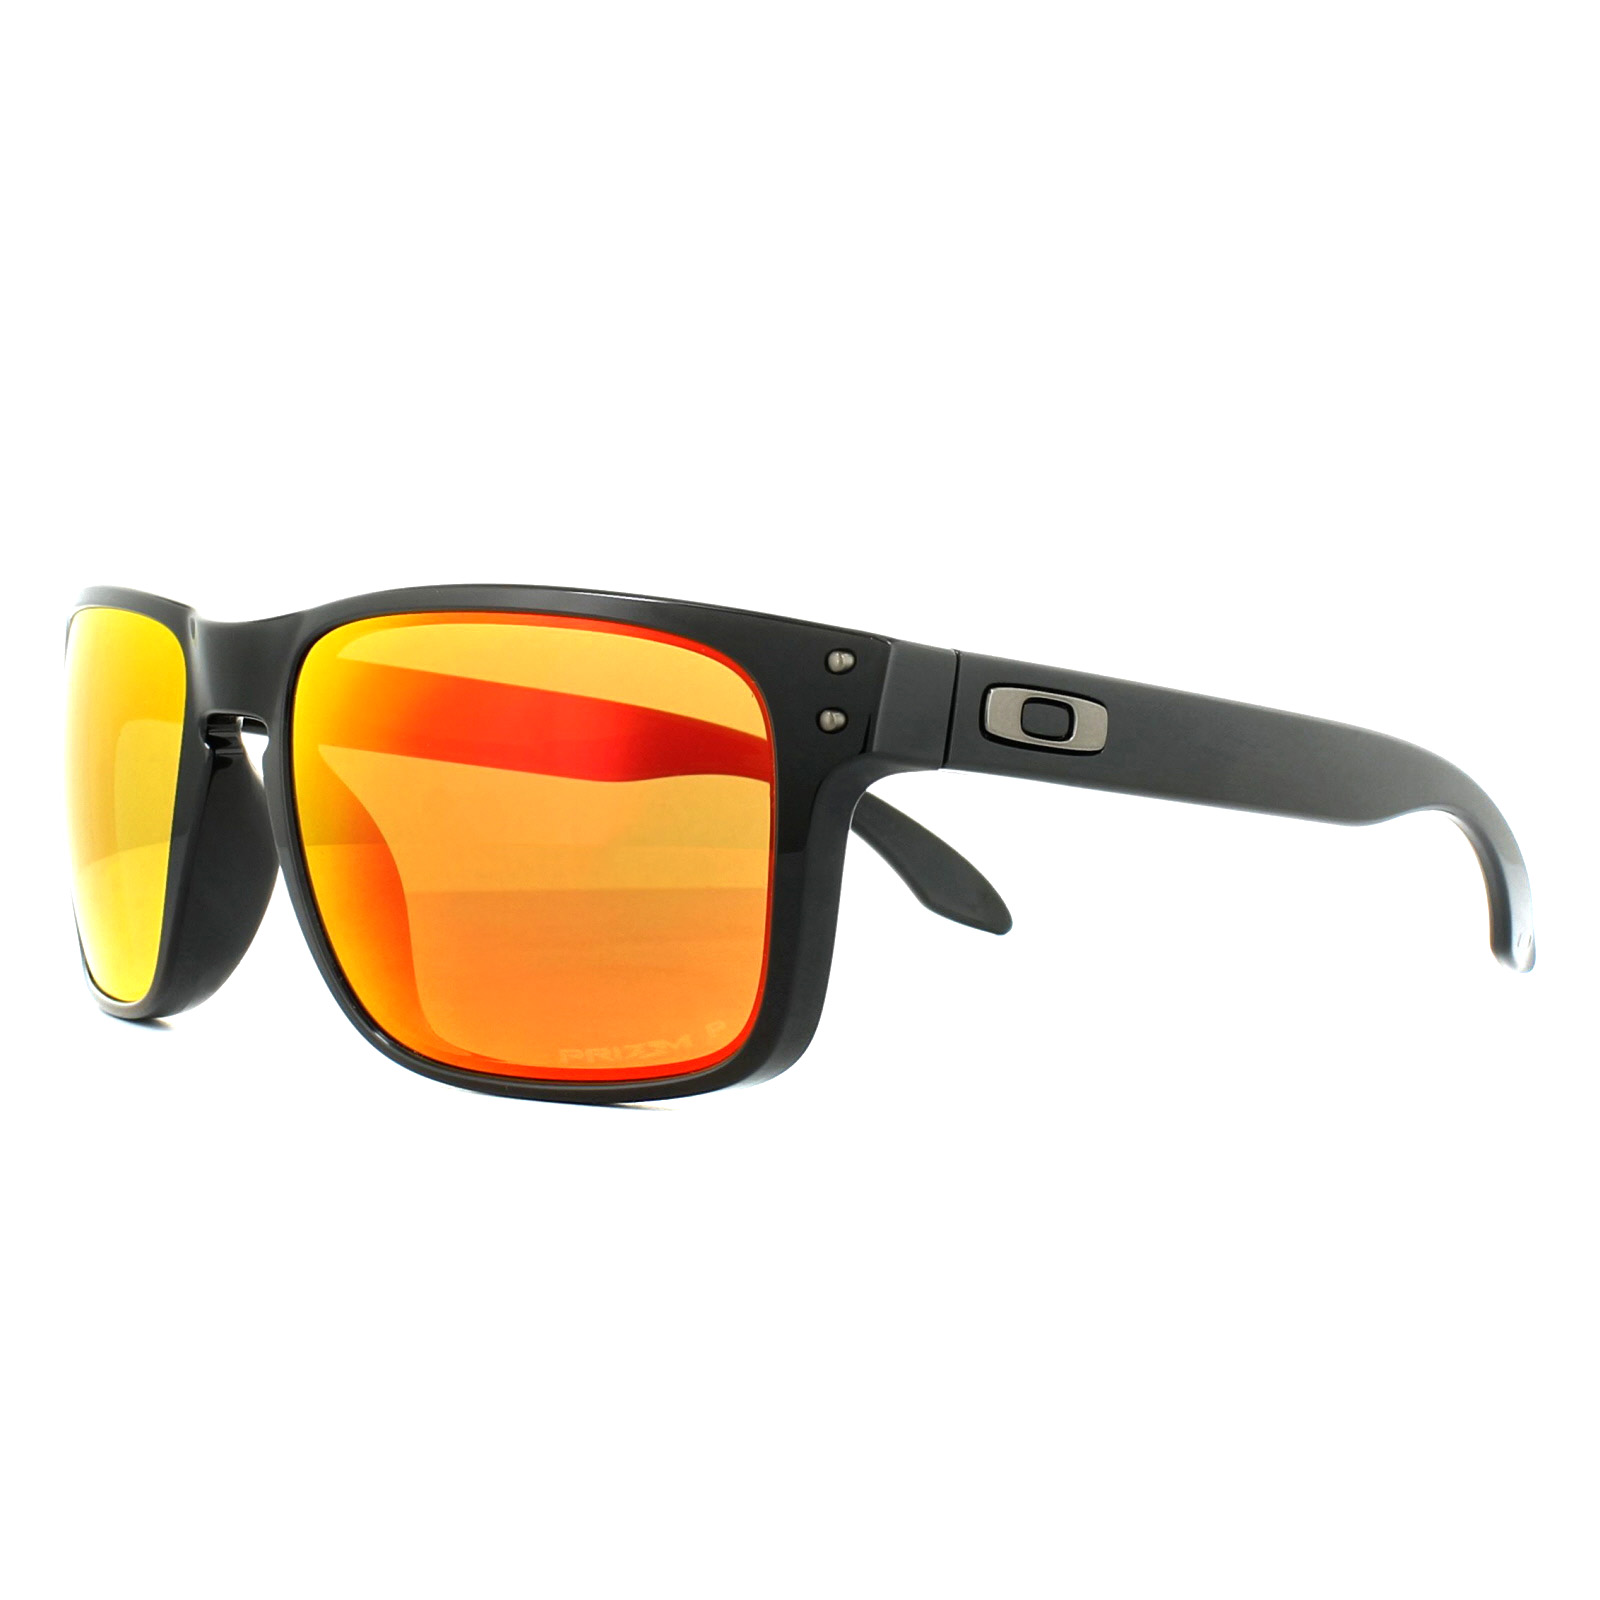 7f1001b62f Sentinel Oakley Sunglasses Holbrook OO9102-F1 Polished Black Prizm Ruby  Polarized